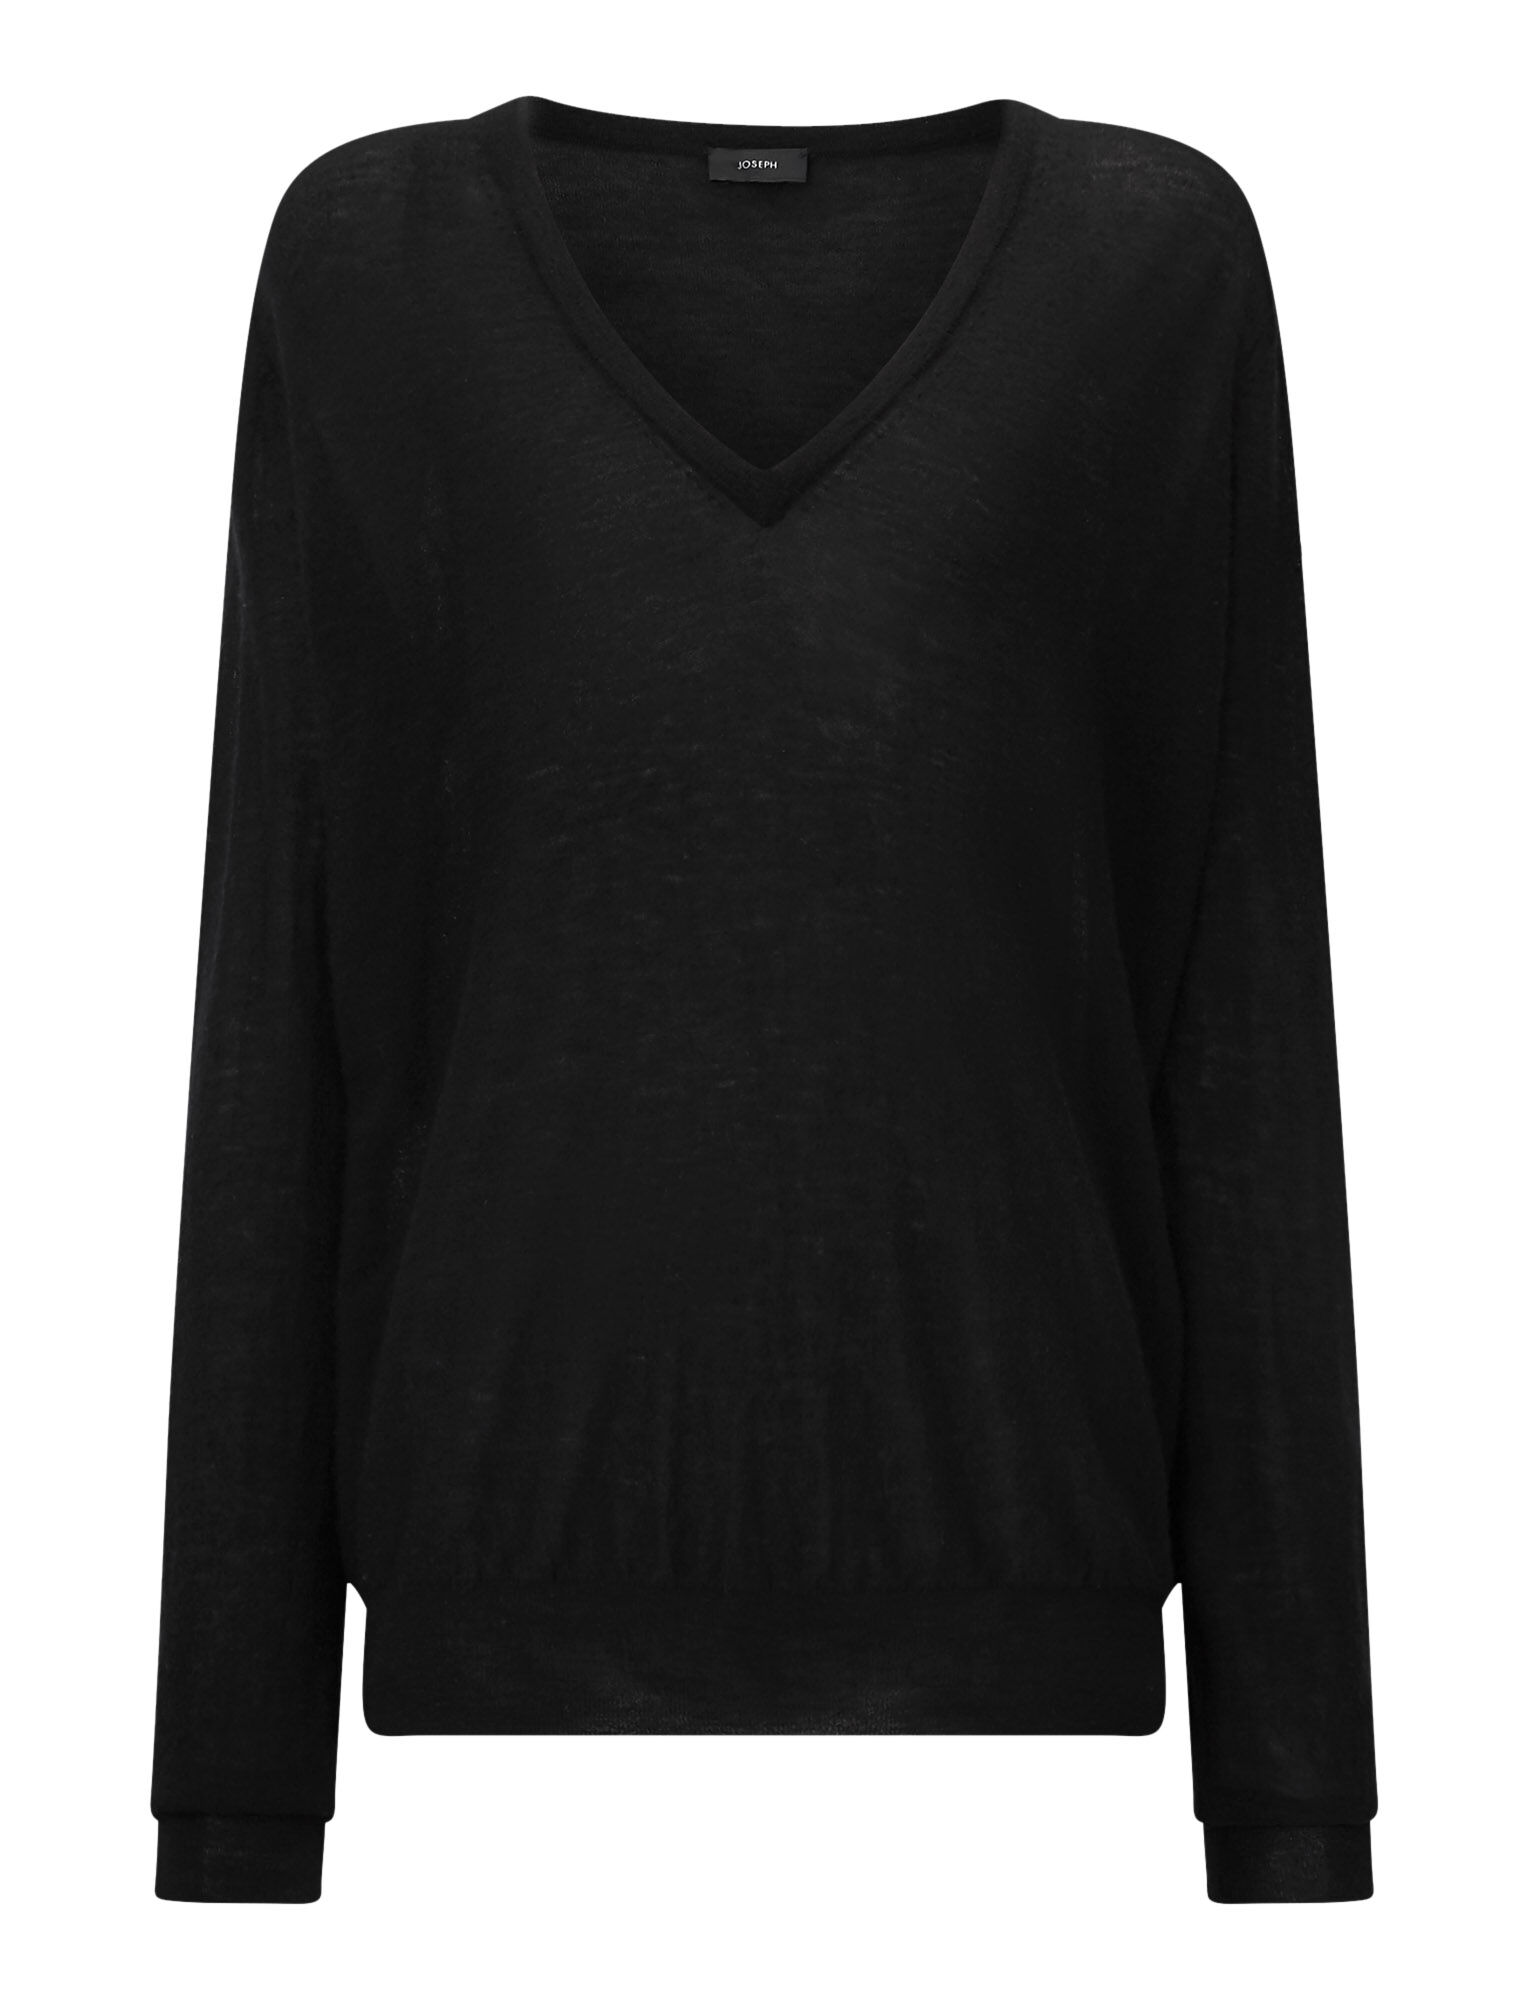 Joseph, Cashair V Neck Jumper, in BLACK